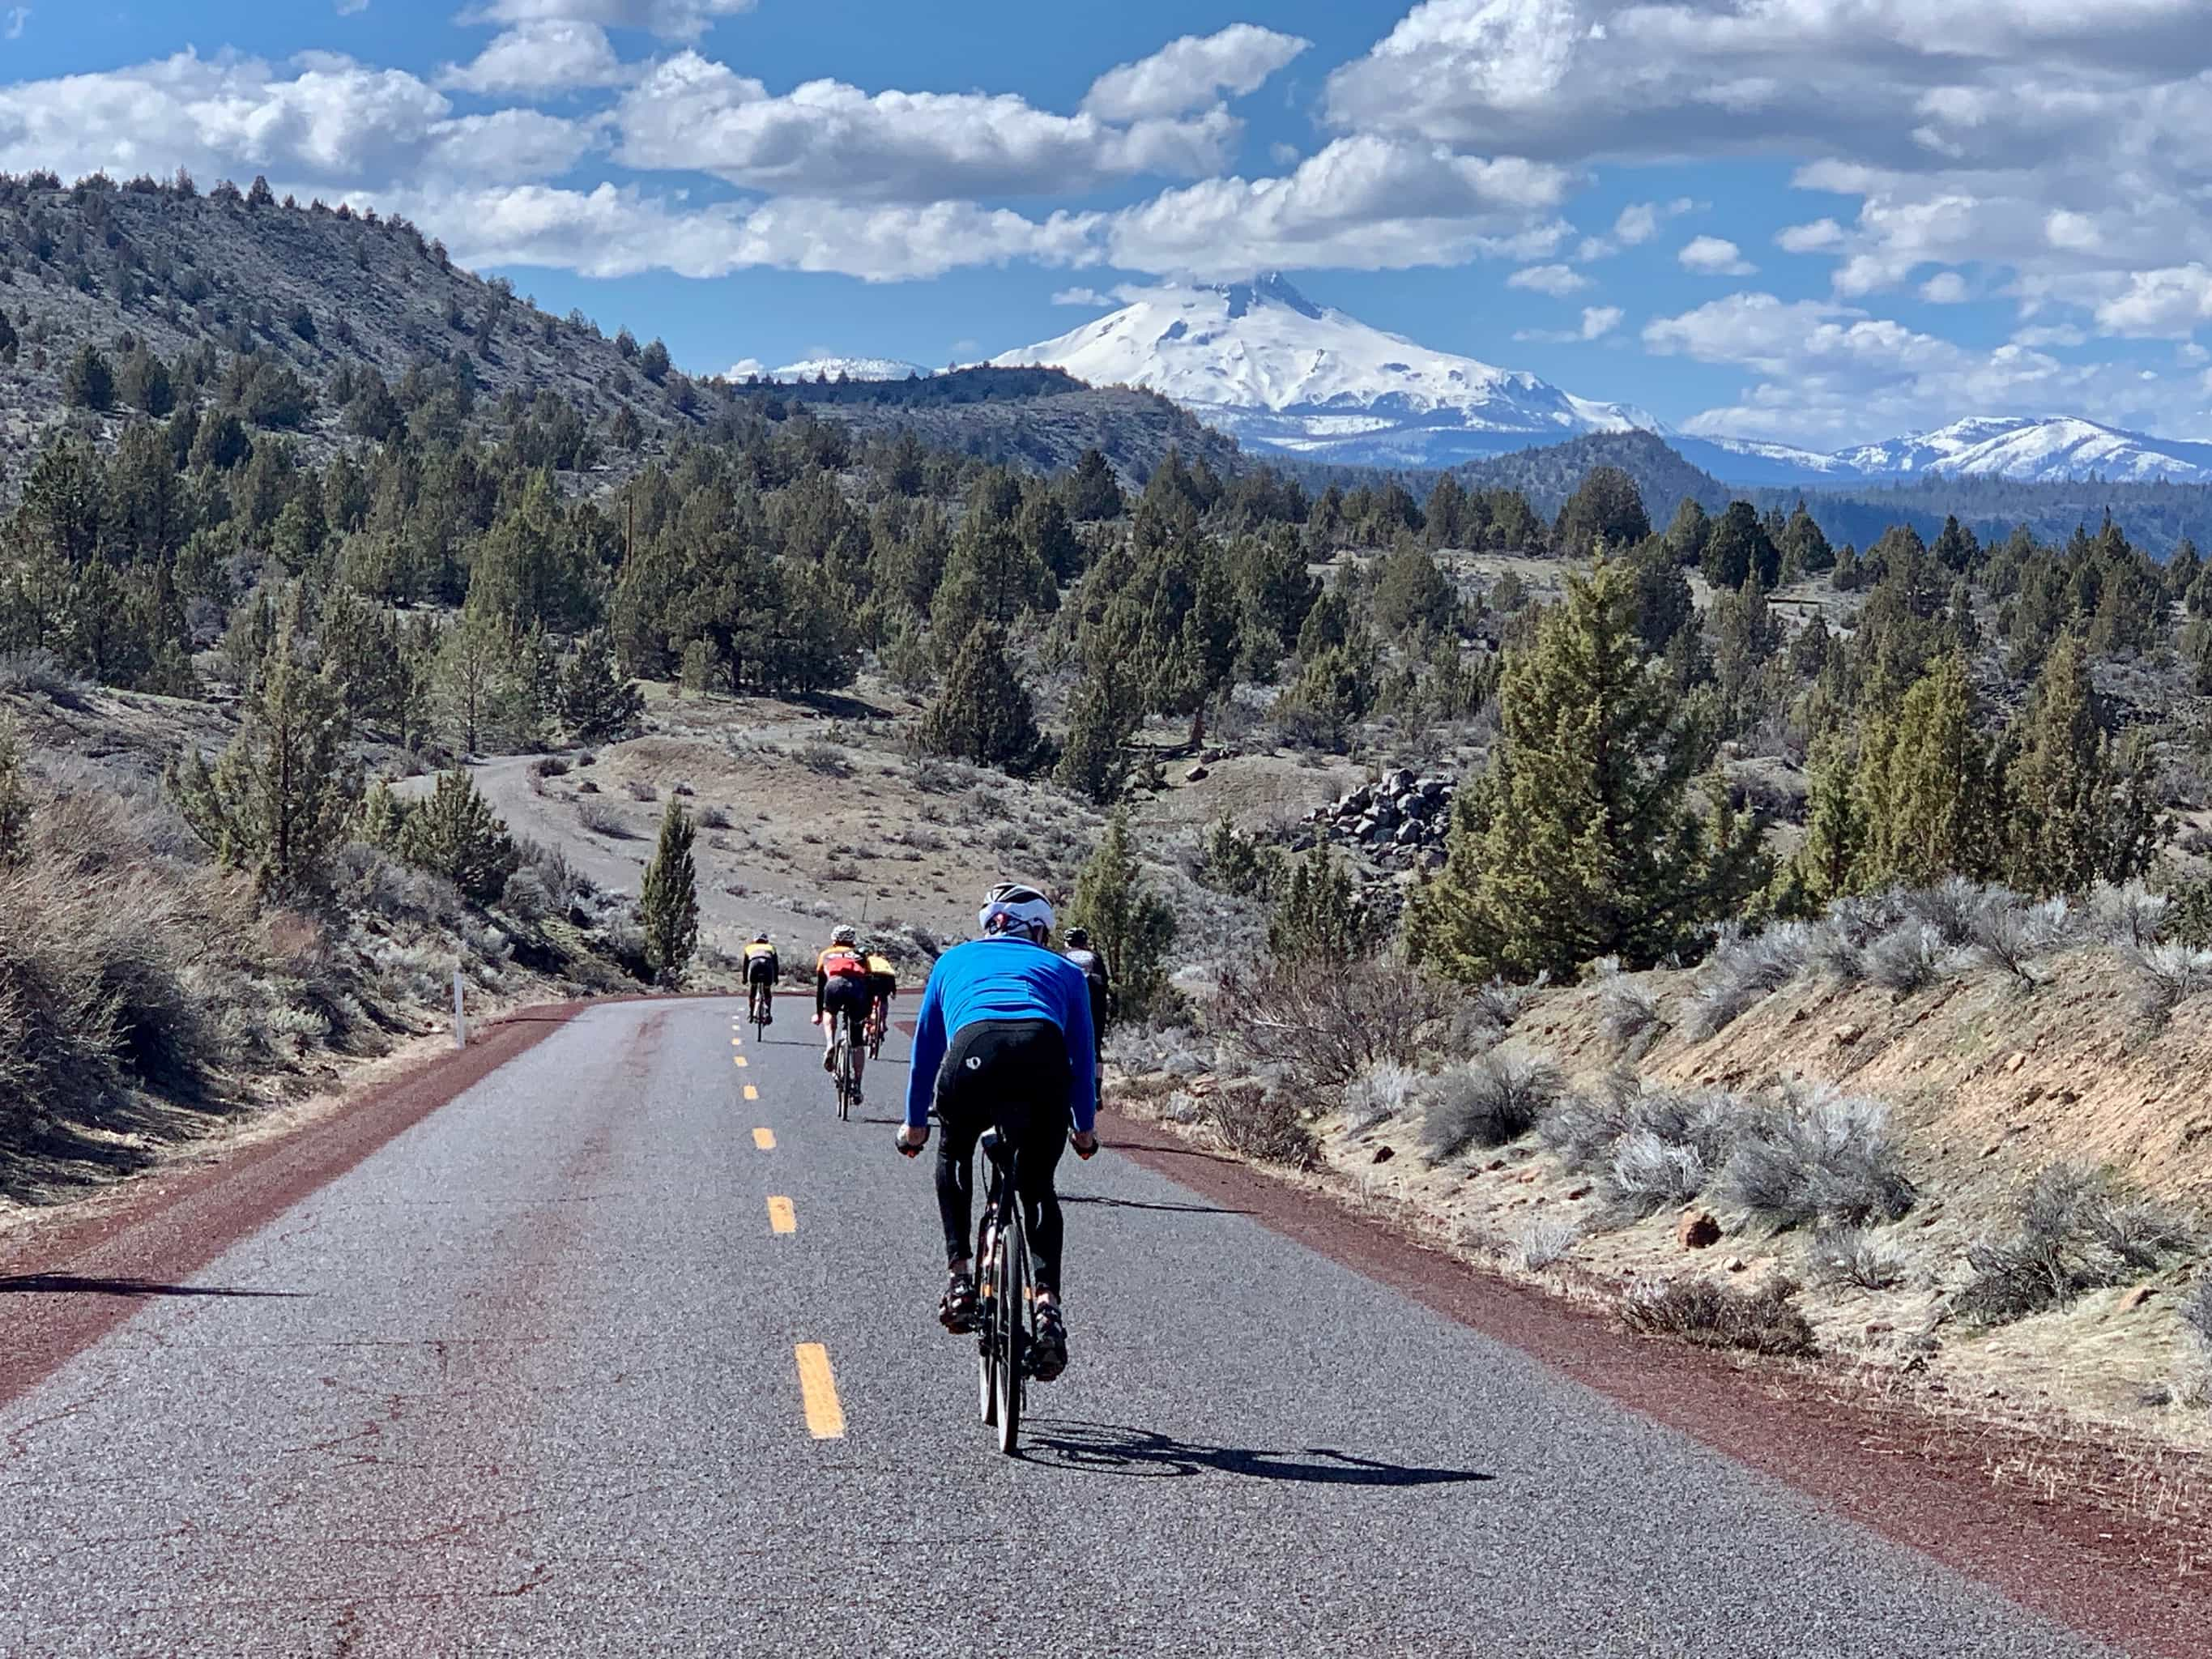 Cyclists on paved road descending with Mt. Jefferson in the background.